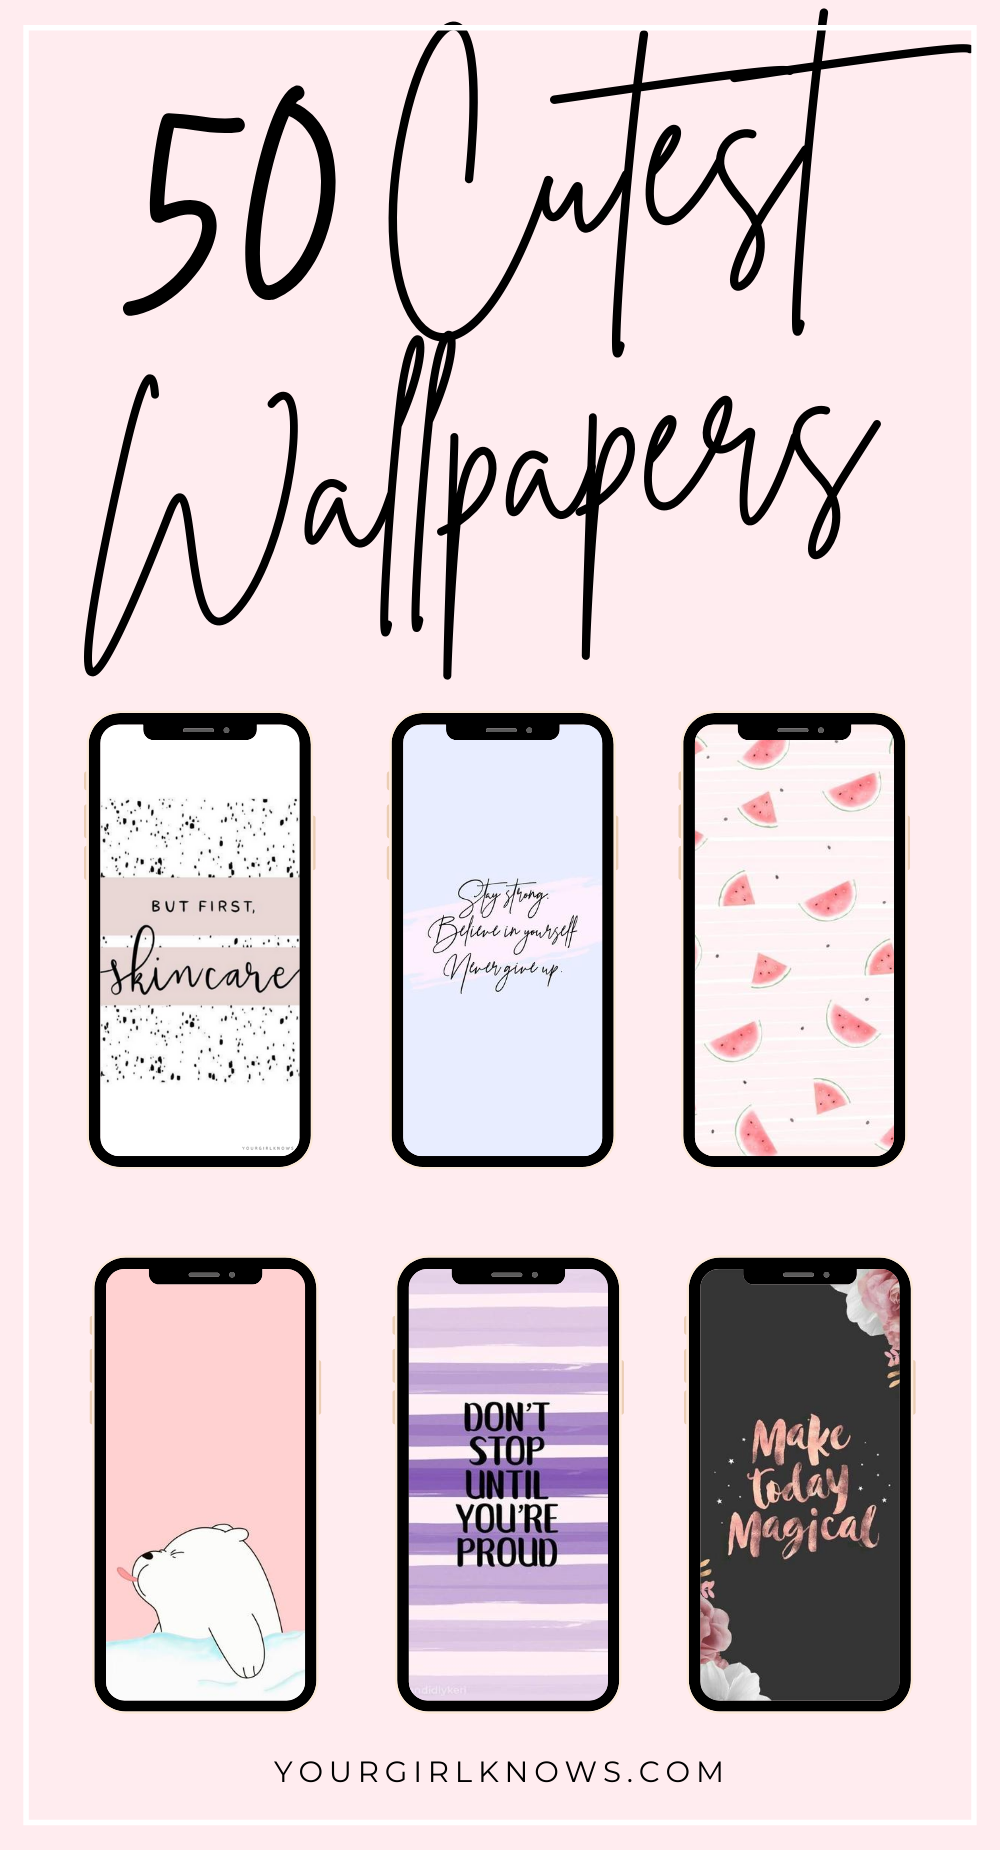 50 Cute Wallpaper Backgrounds For Girls You Ll Really Love Free Cute Wallpaper Backgrounds Cute Girl Wallpaper Girl Wallpaper Cute Wallpaper Backgrounds